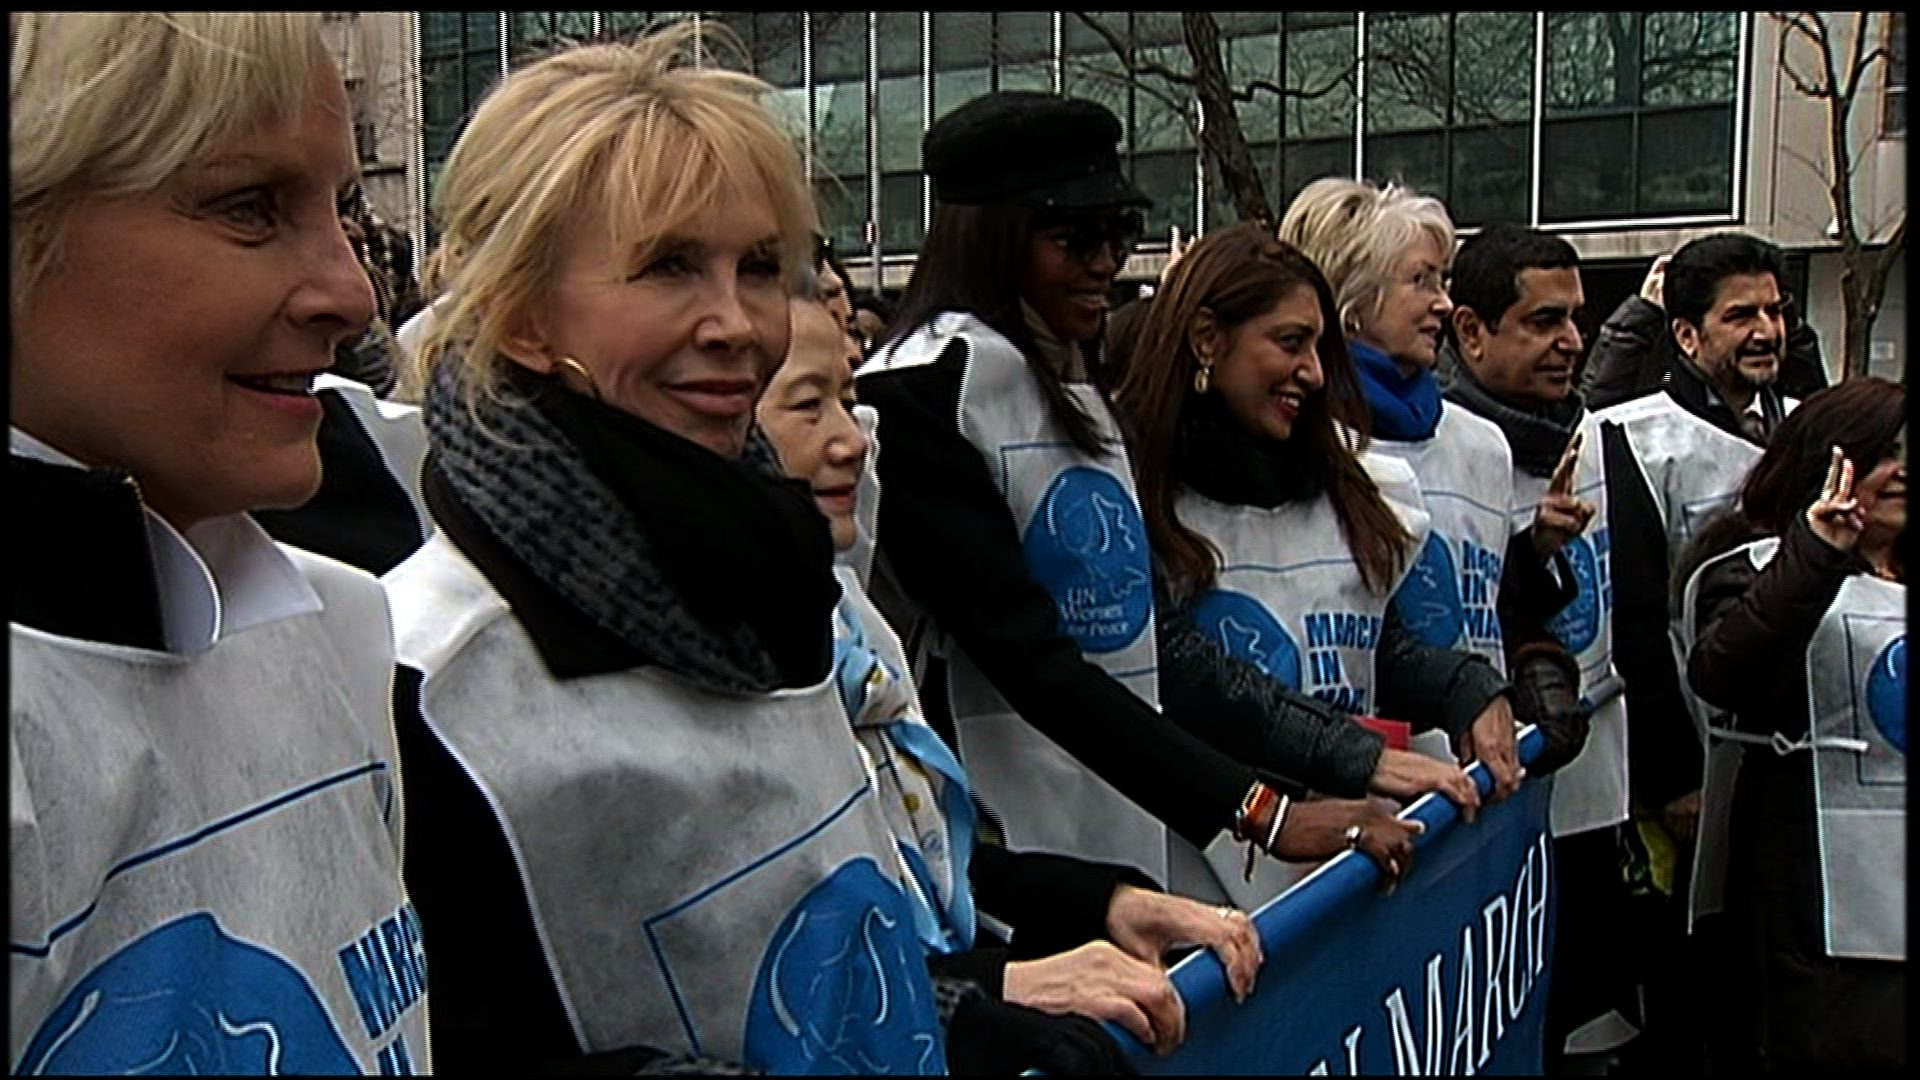 Selected frame from video story UN / INTERNATIONAL WOMEN'S DAY